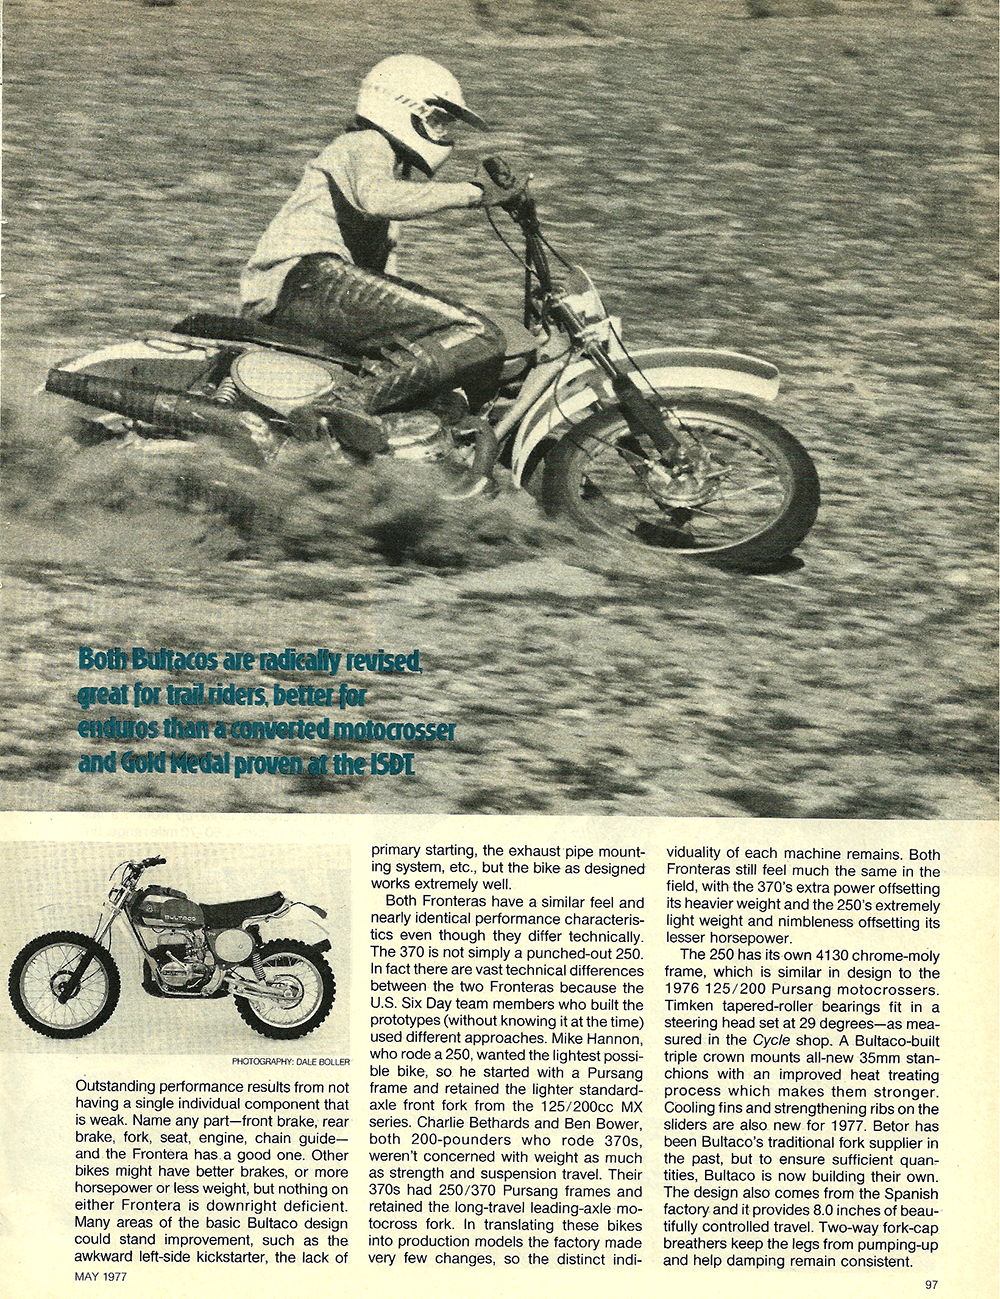 1977 Bultaco 250 and 380 Frontera road test 2.jpg